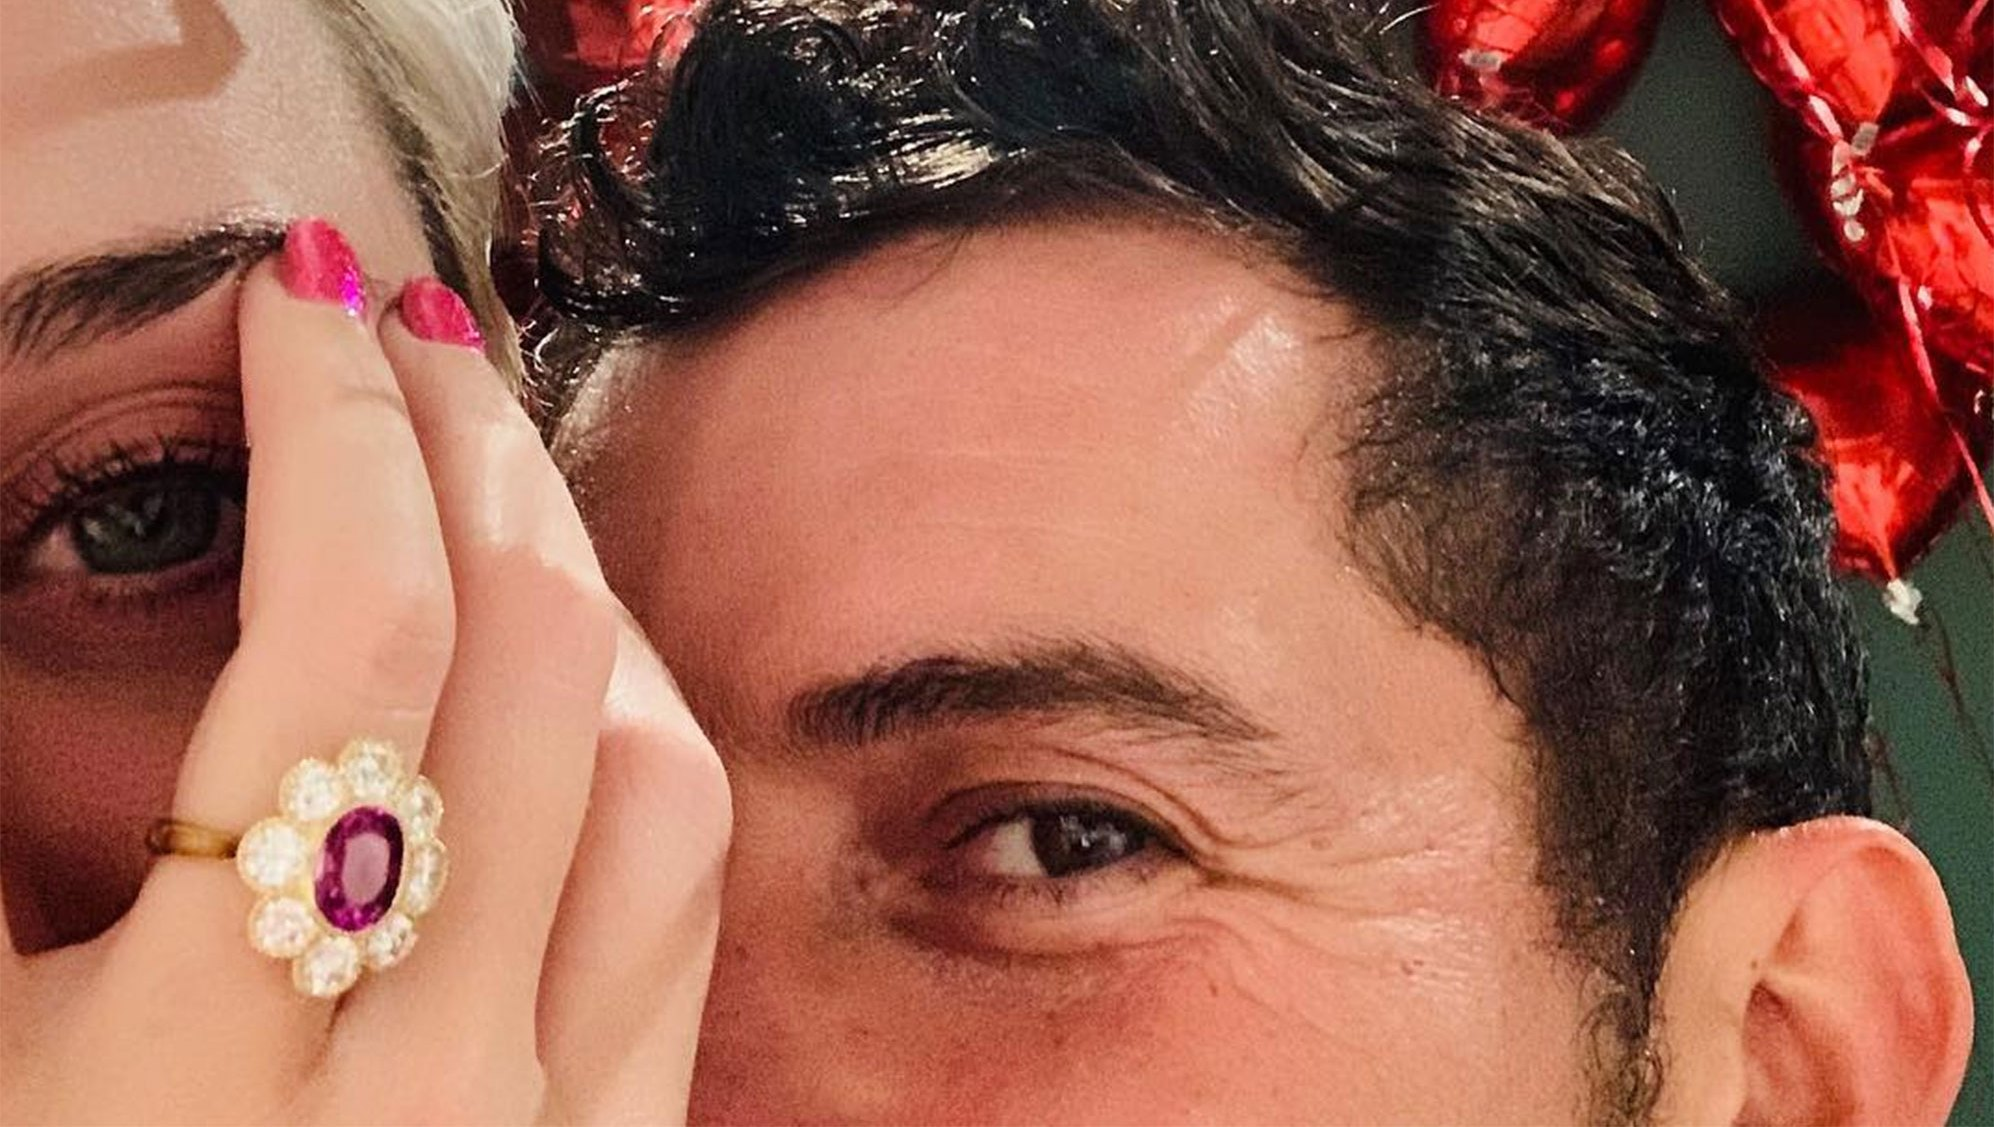 Katy Perry and Orlando Bloom Katy Perry¹s Dazzling Pink Engagement Ring: Everything We Know